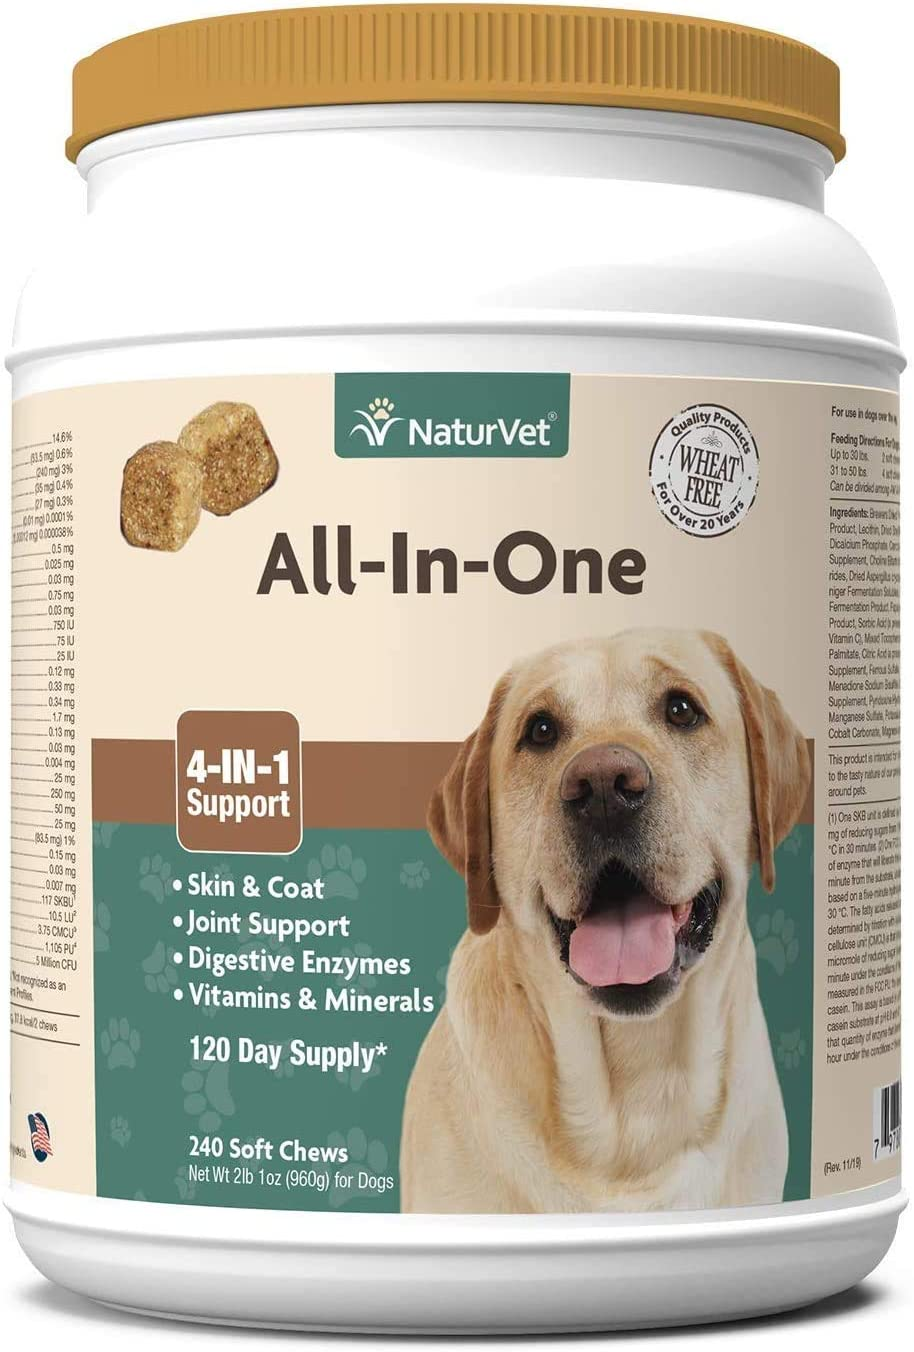 NaturVet All-in-One Dog Supplement - for Joint Support, Digestion, Skin, Coat Care – Dog Vitamins, Minerals, Omega-3, 6, 9 – Wheat-Free Supplements for Dogs – 240 Soft Chews